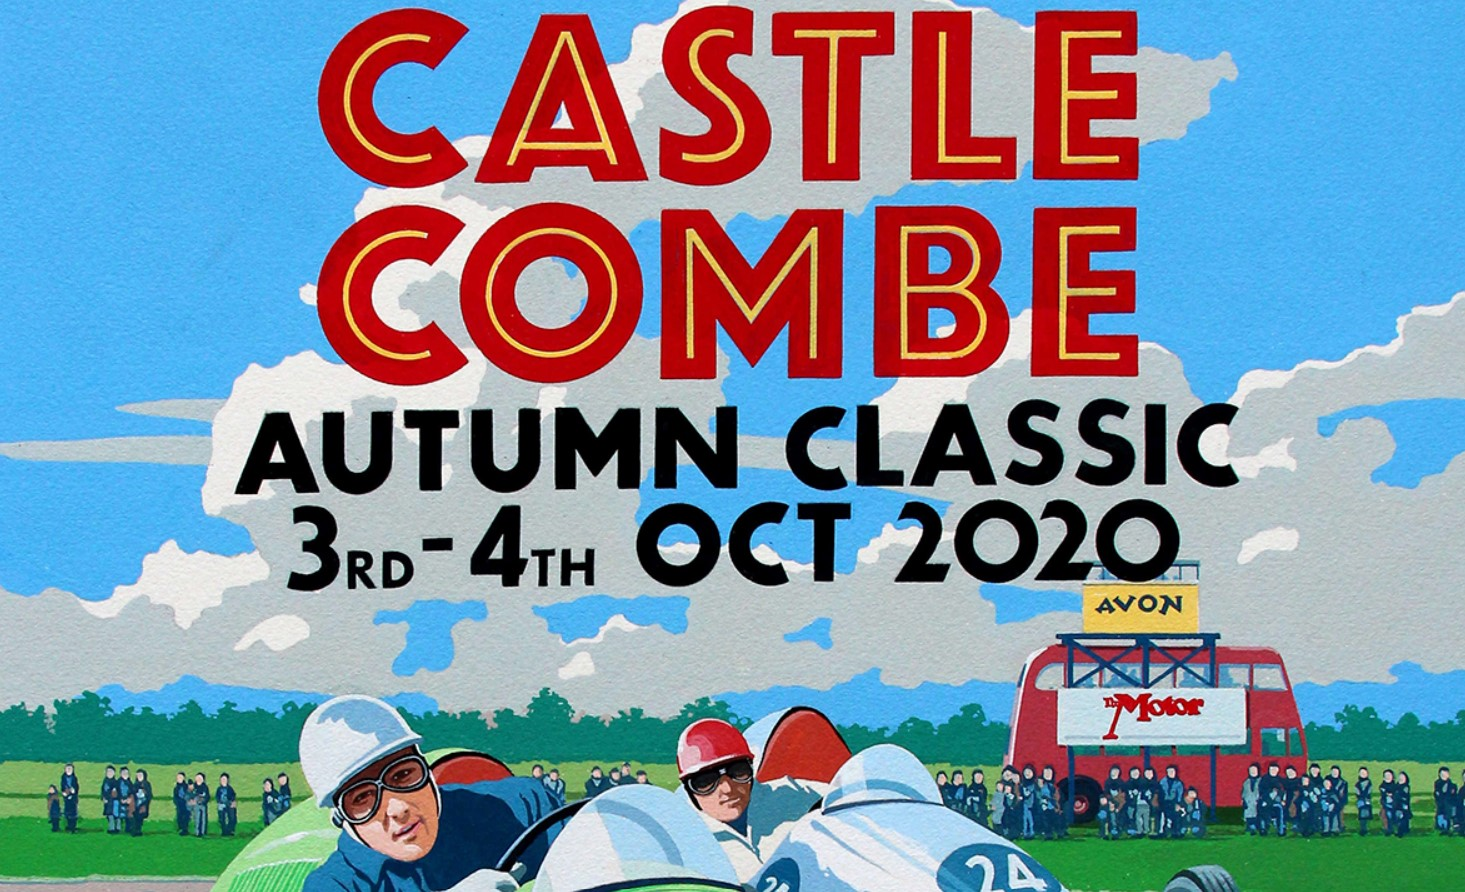 VSCC At Castle Combe - CANCELLED